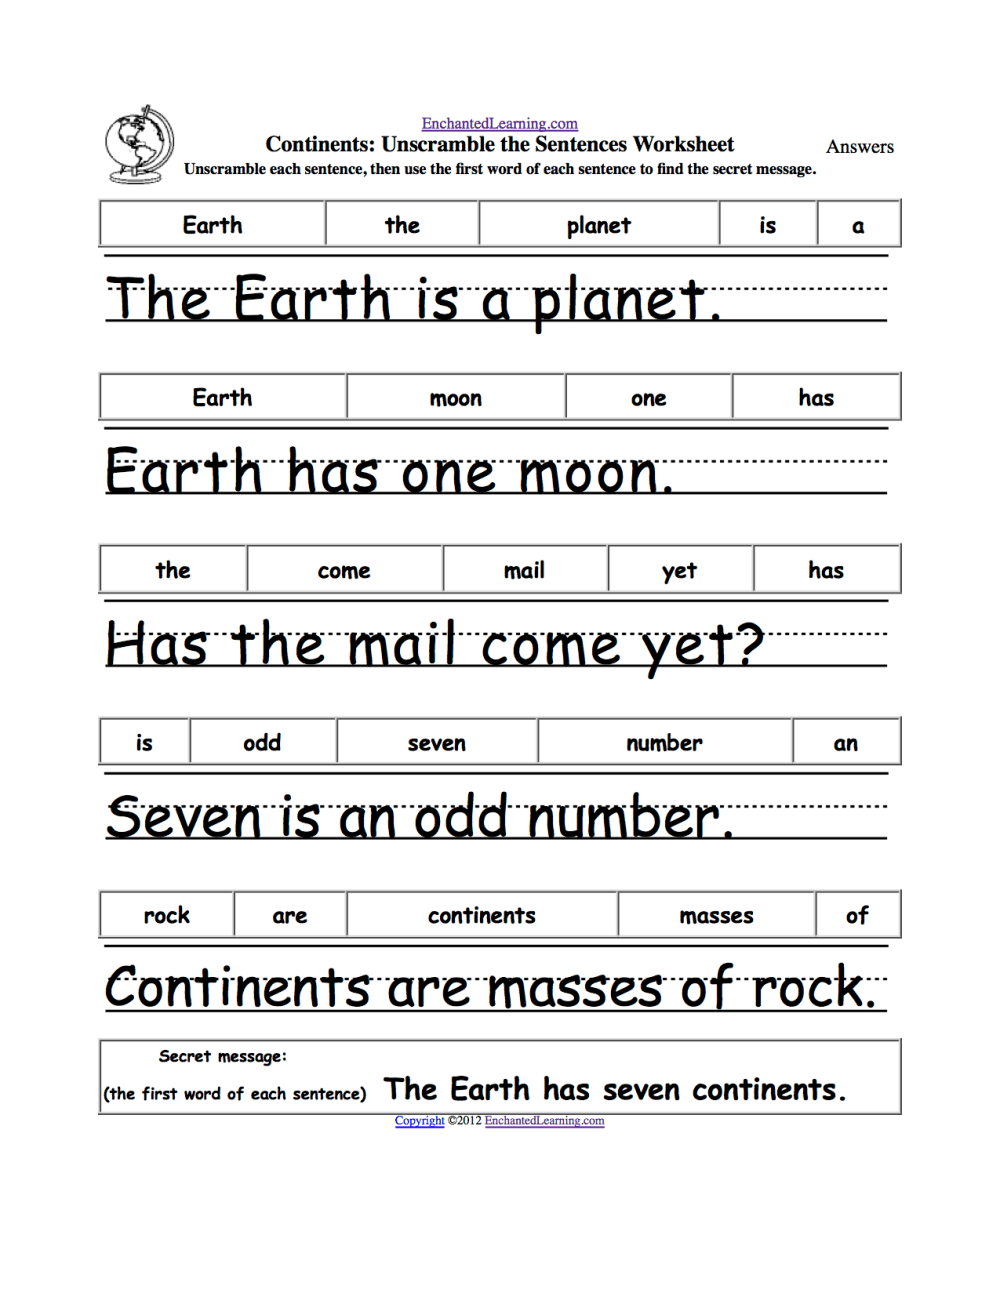 medium resolution of Unscramble the Sentences Worksheets - EnchantedLearning.com